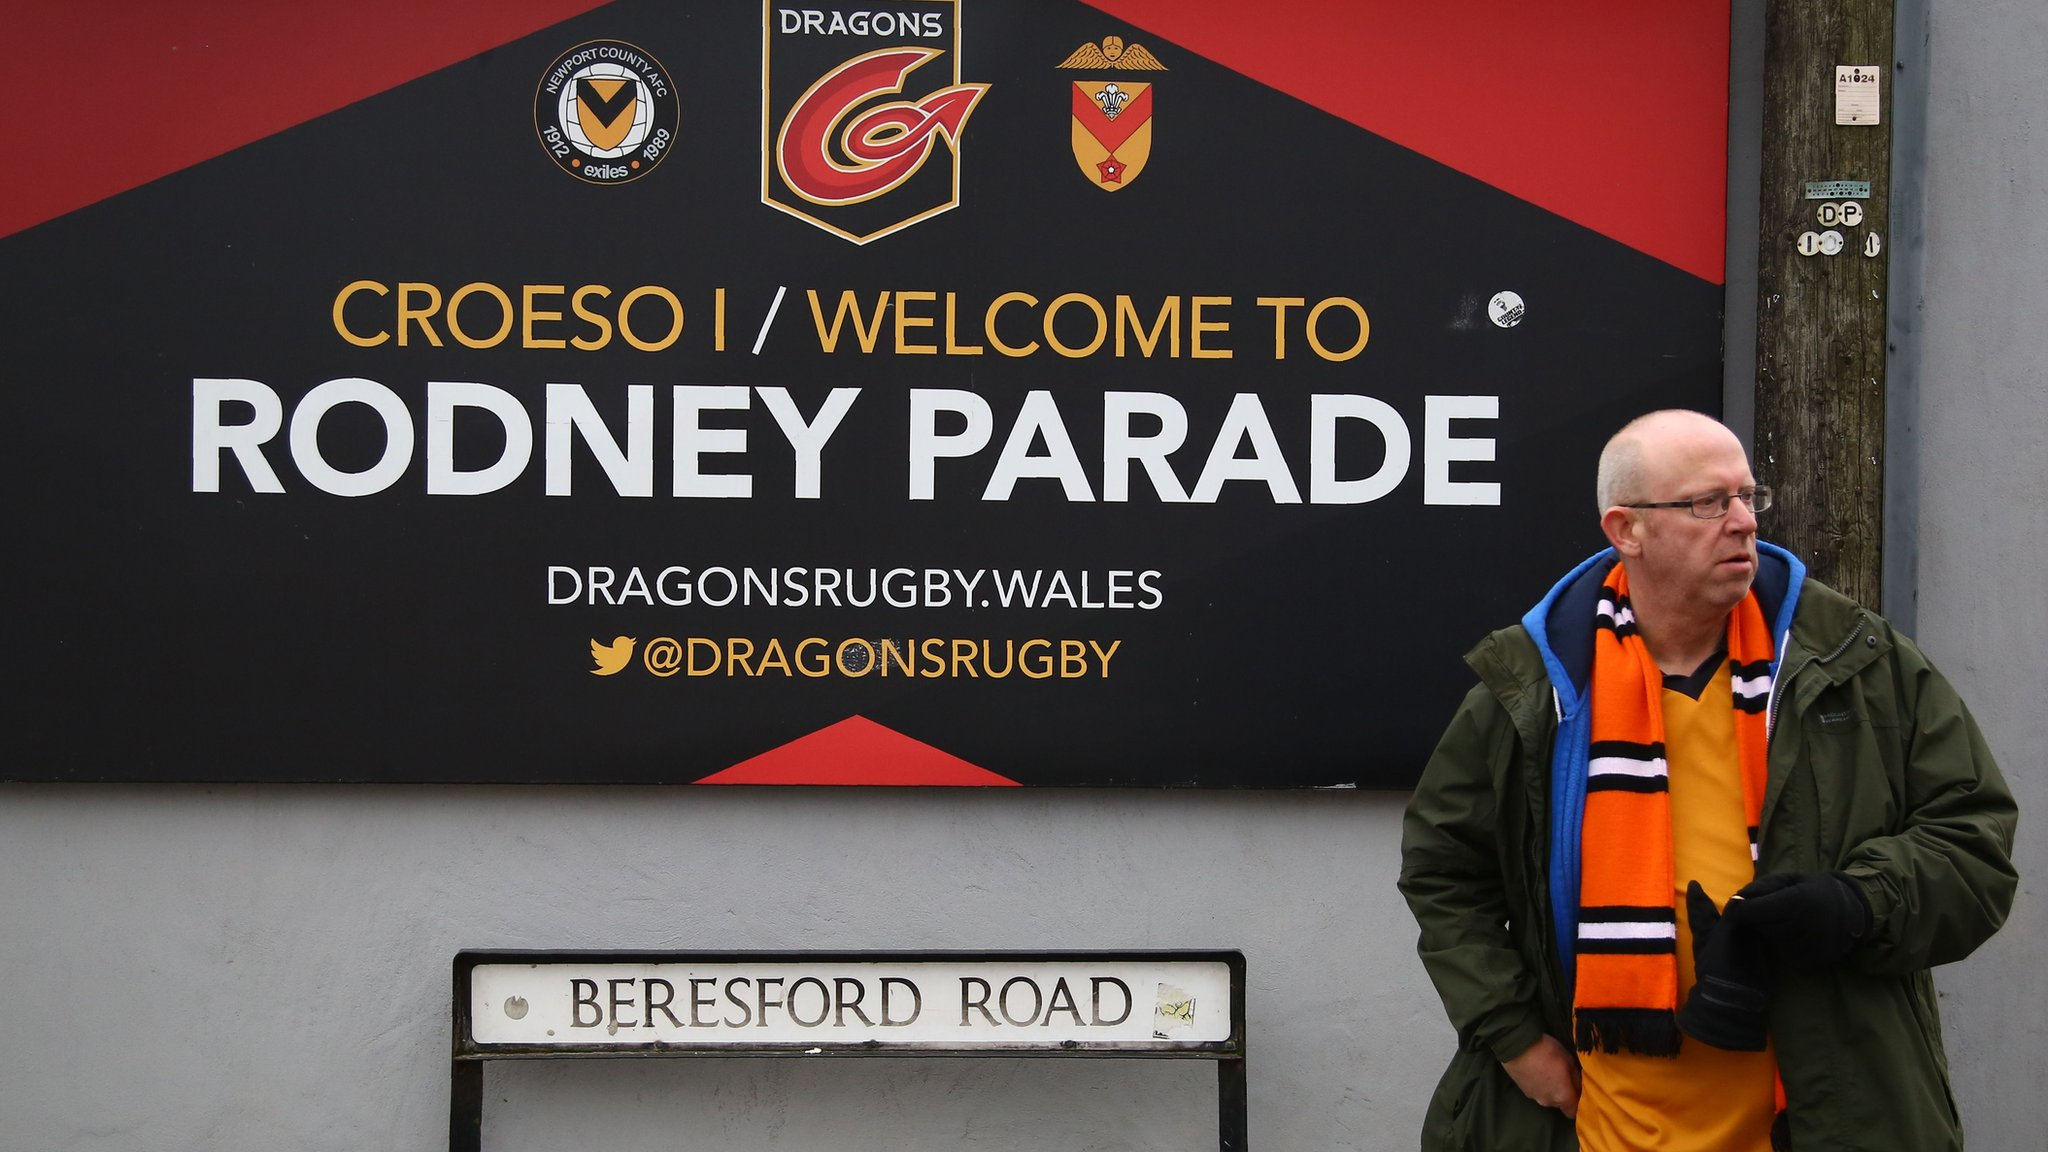 Rodney Parade: What can Man City expect at Rodney Parade?